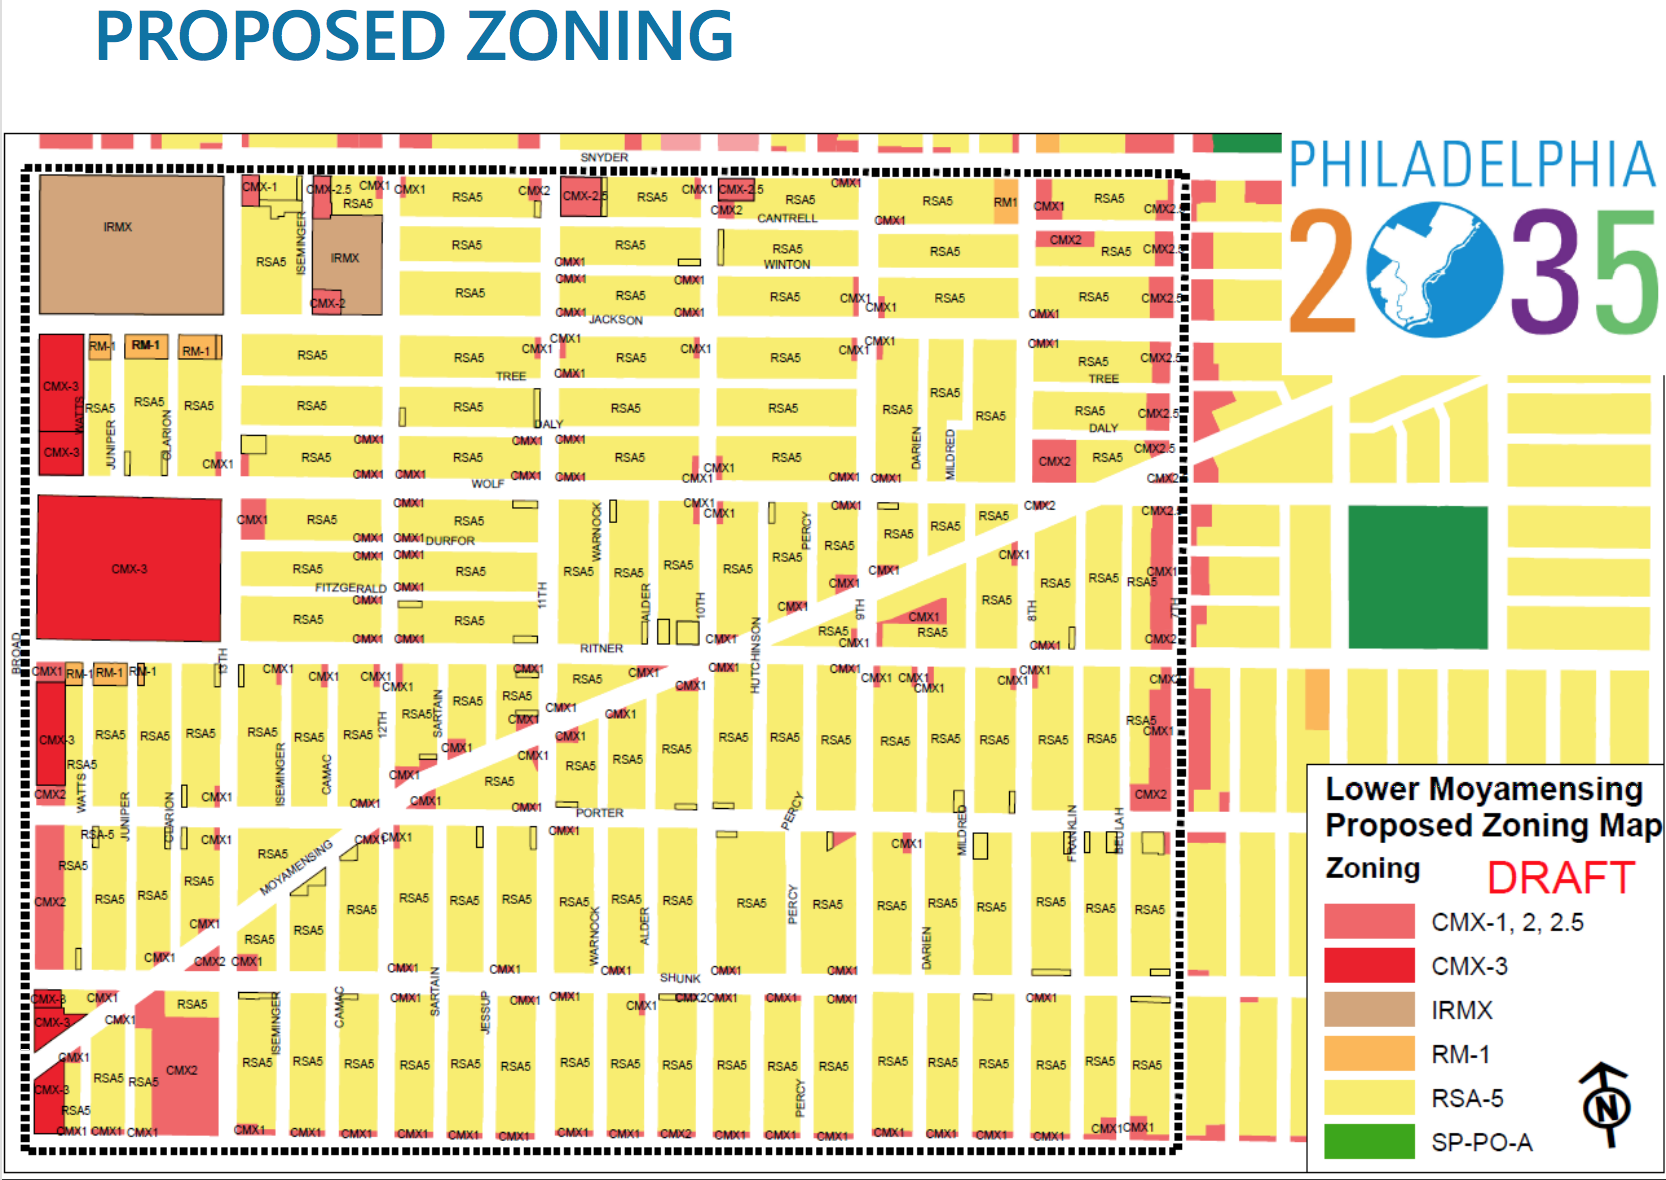 Lower Moyamensing sees zoning shifts in the Philadelphia2035